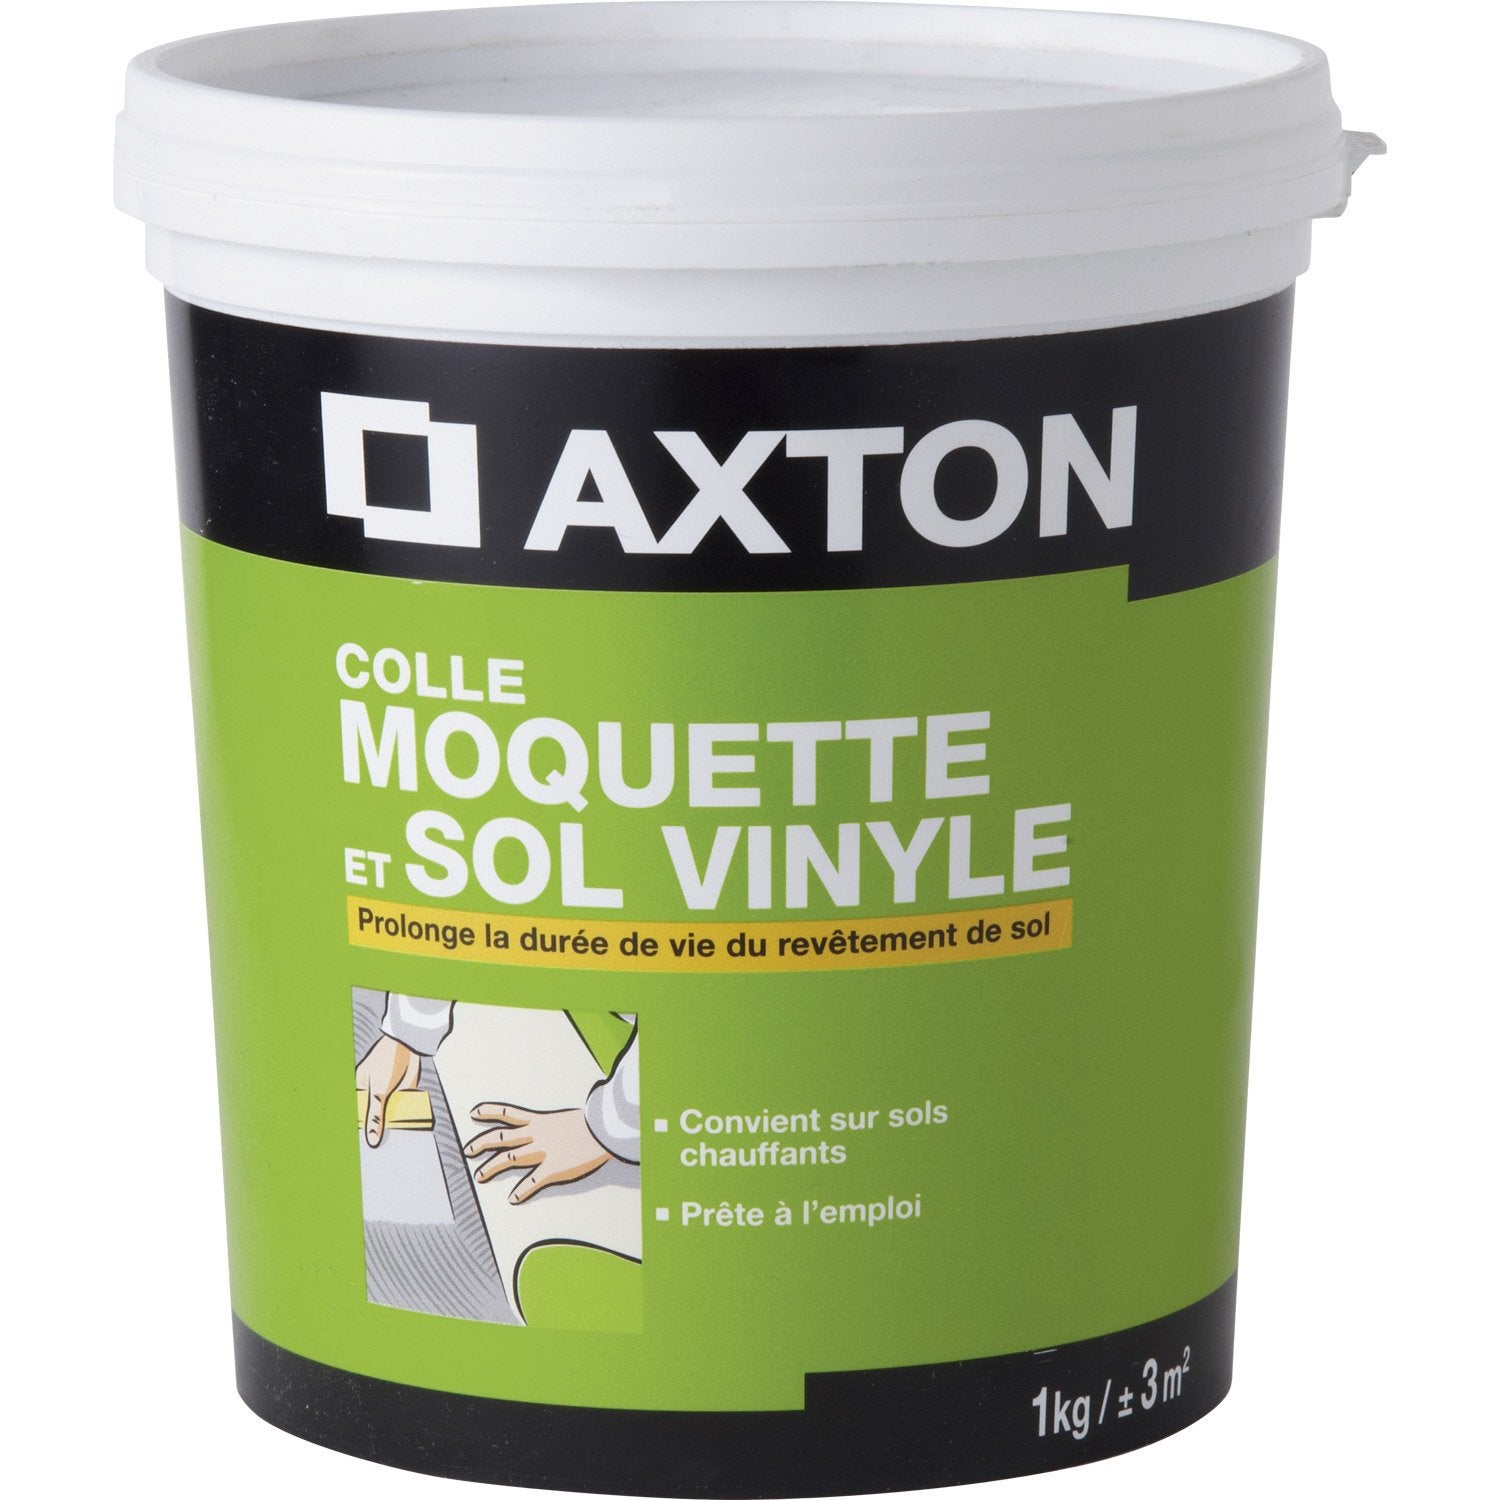 Colle sol souple 1 kg axton leroy merlin for Sol pvc sans colle